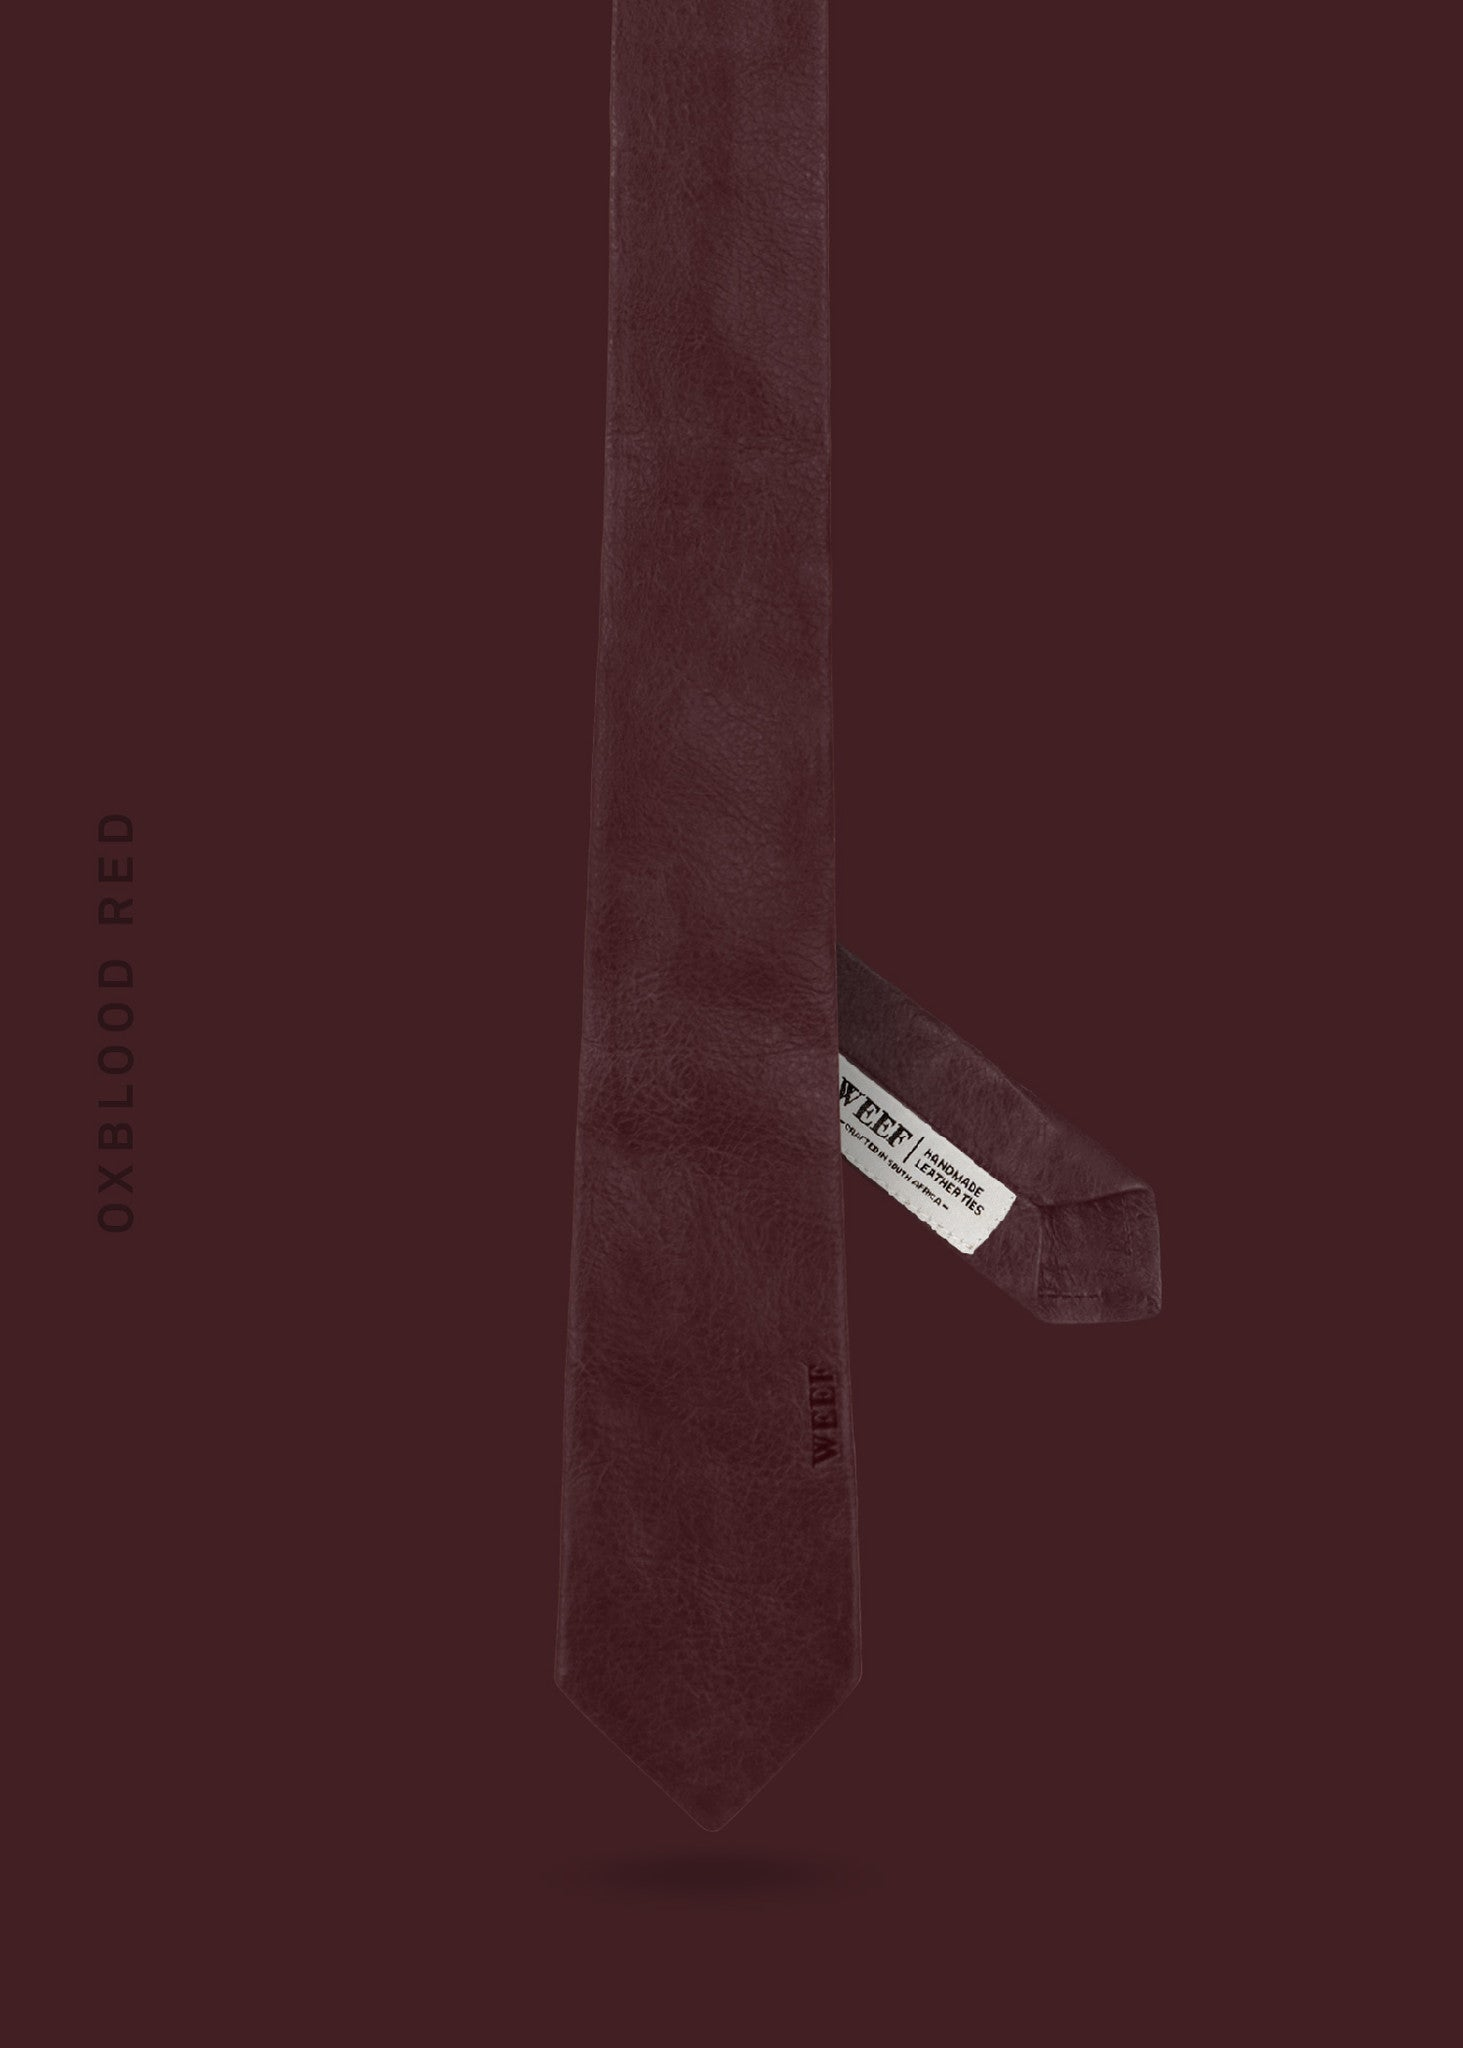 This oxblood red WEEF handmade leather tie is a great present or gift idea for dapper and stylish gentlemen for fathers day, valentines day or Christmas.